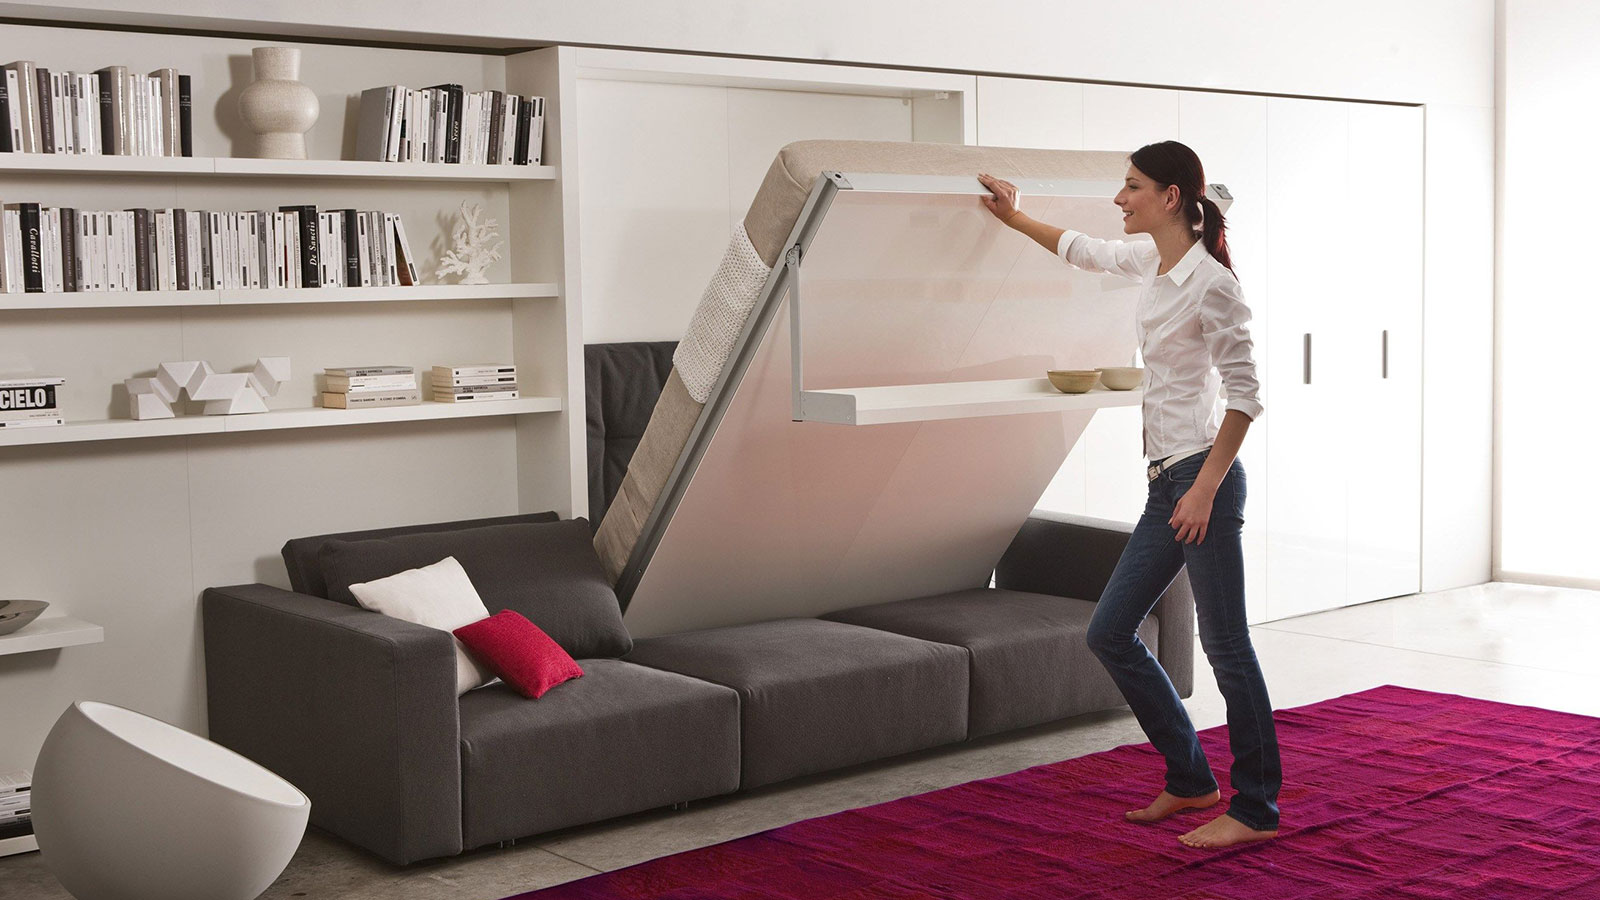 These 10 Modern Murphy Beds Will Help You Maximize Space